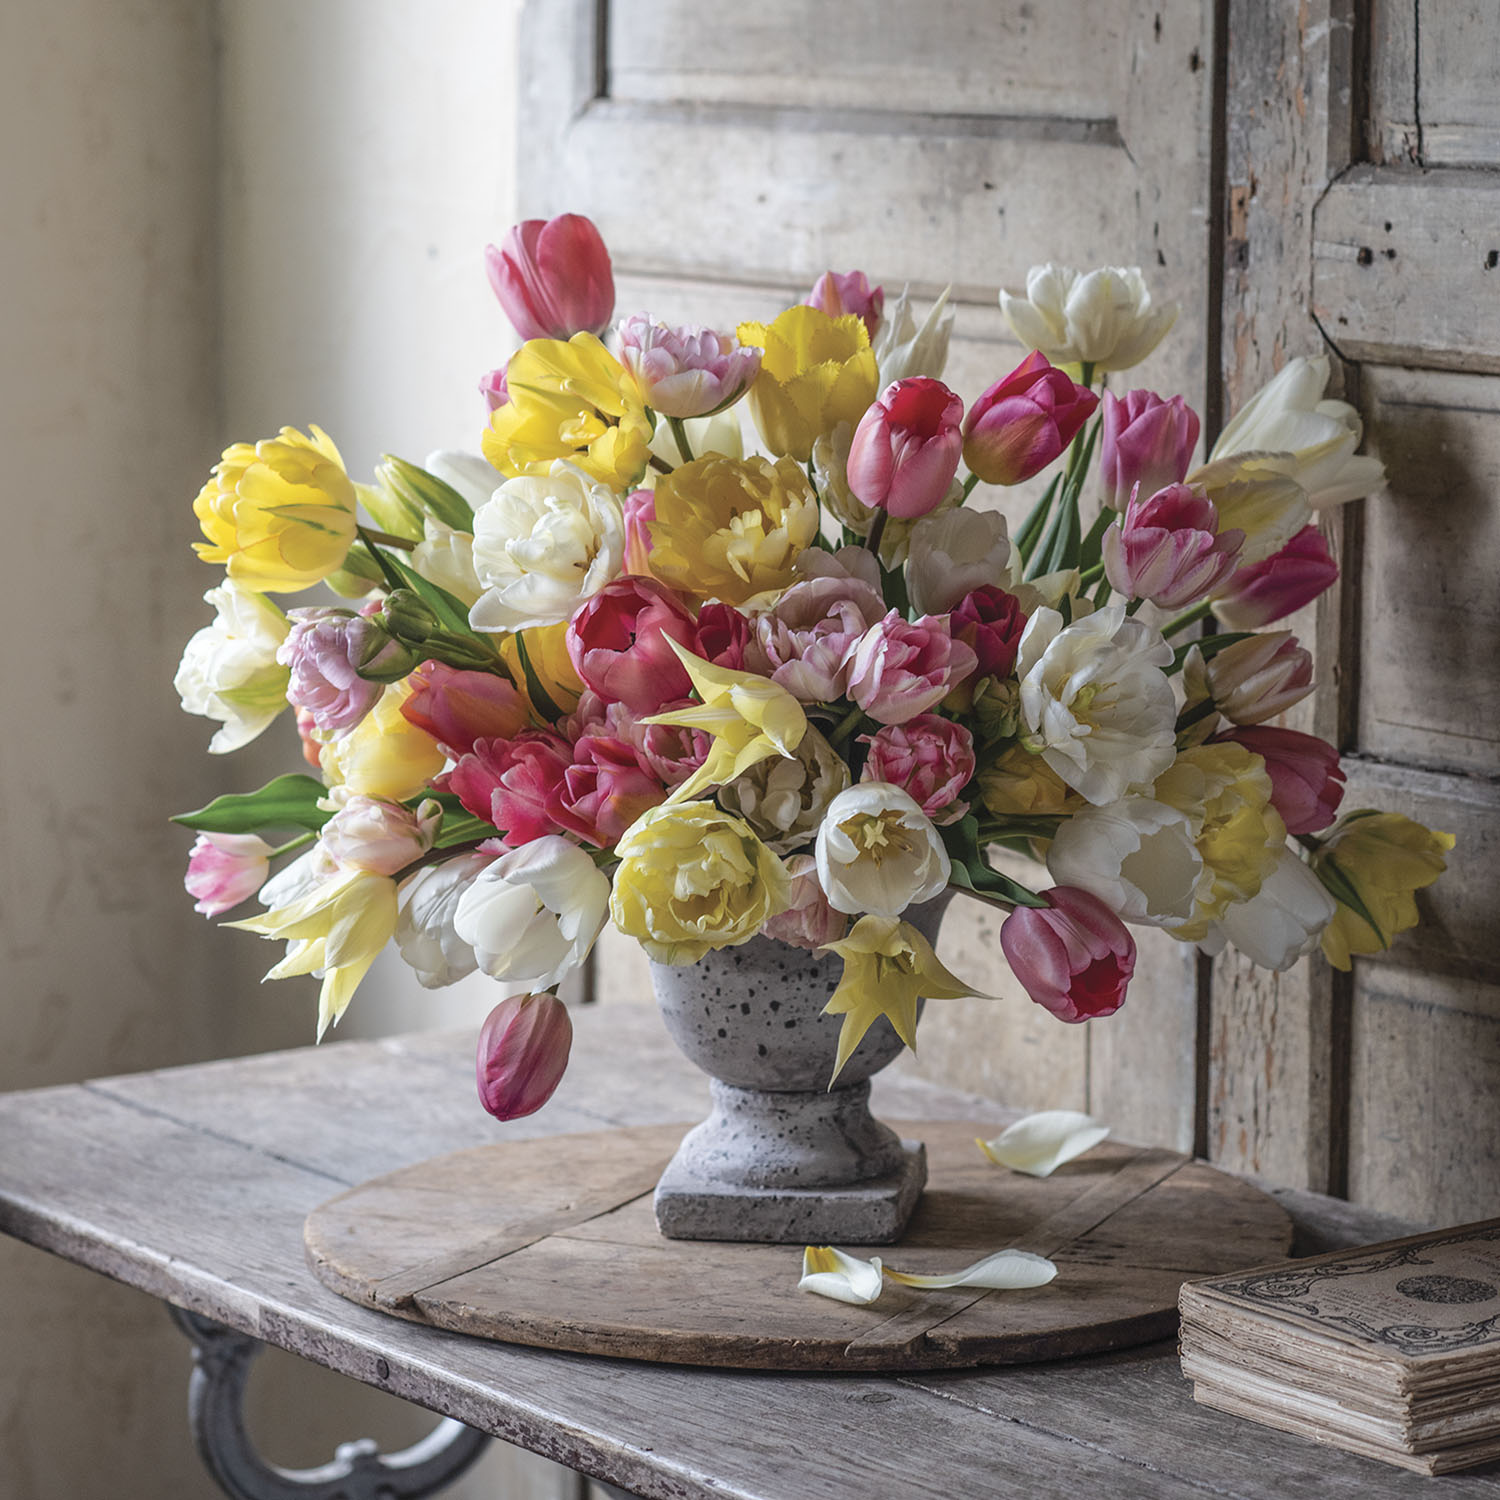 multicolored tulip arrangement by Sandra Sigman with pink, yellow, and white blooms